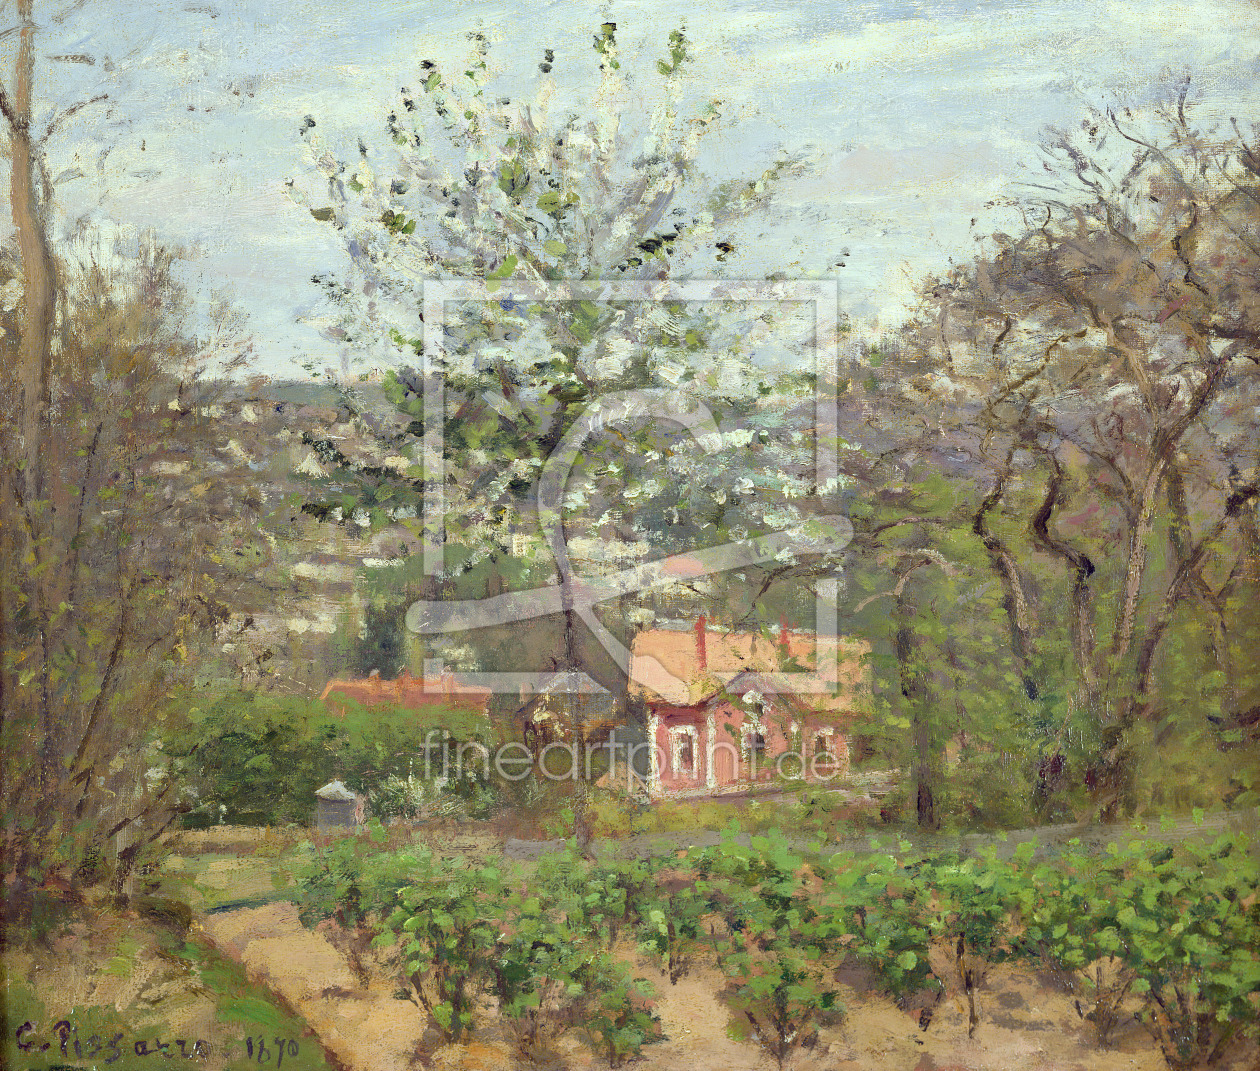 Bild-Nr.: 31000977 The Cottage, or the Pink House - Hamlet of the Flying Heart, 1870 erstellt von Pissarro, Camille